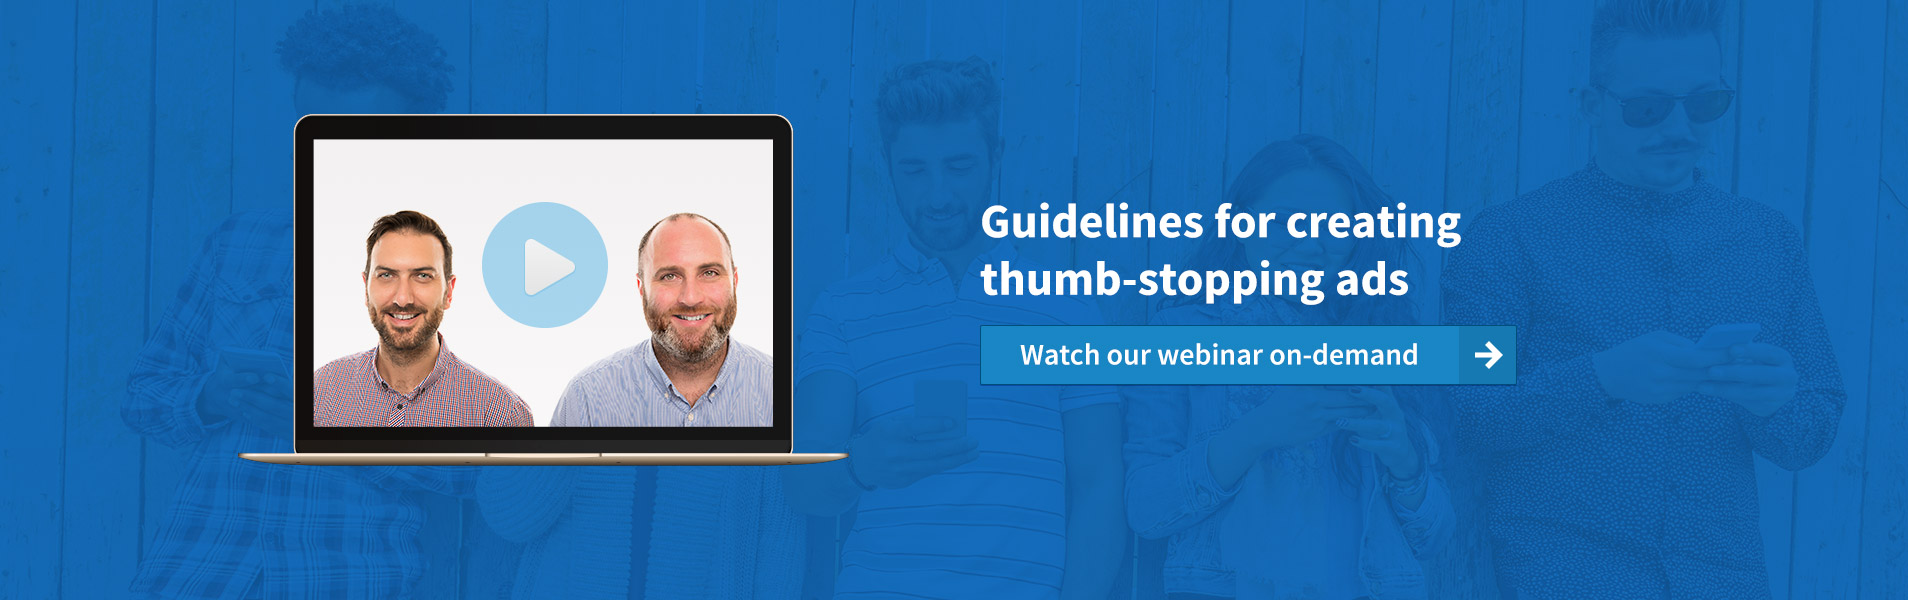 Guidelines for creating thumb stopping ads